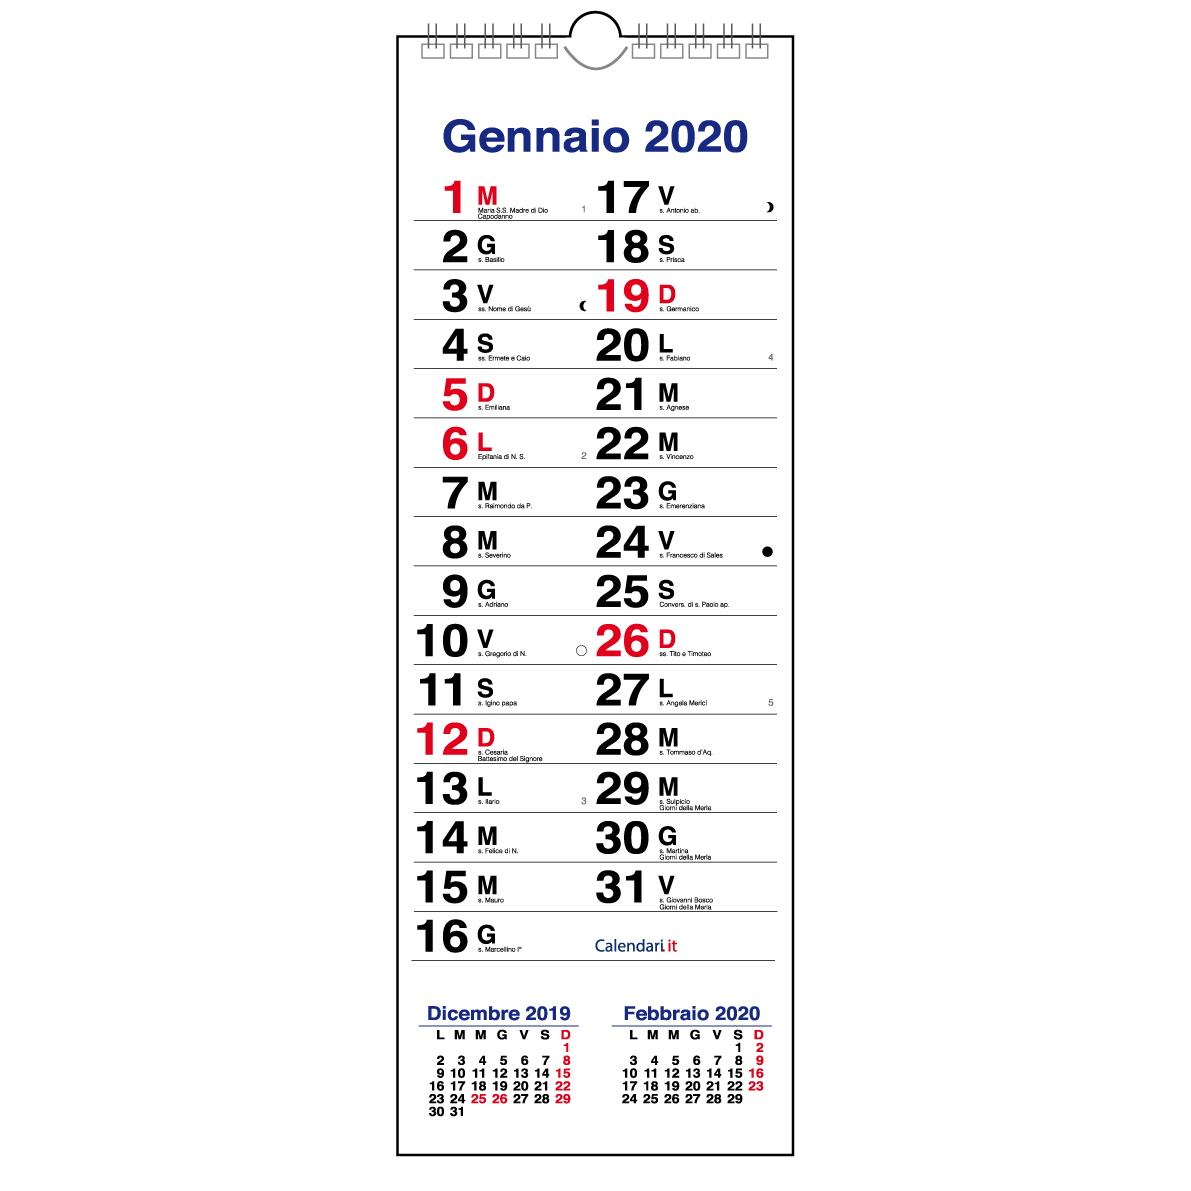 Calendario 2020 Da Parete.Calendario 2020 Mod Olandese Slim Stretto 15x42 Cm